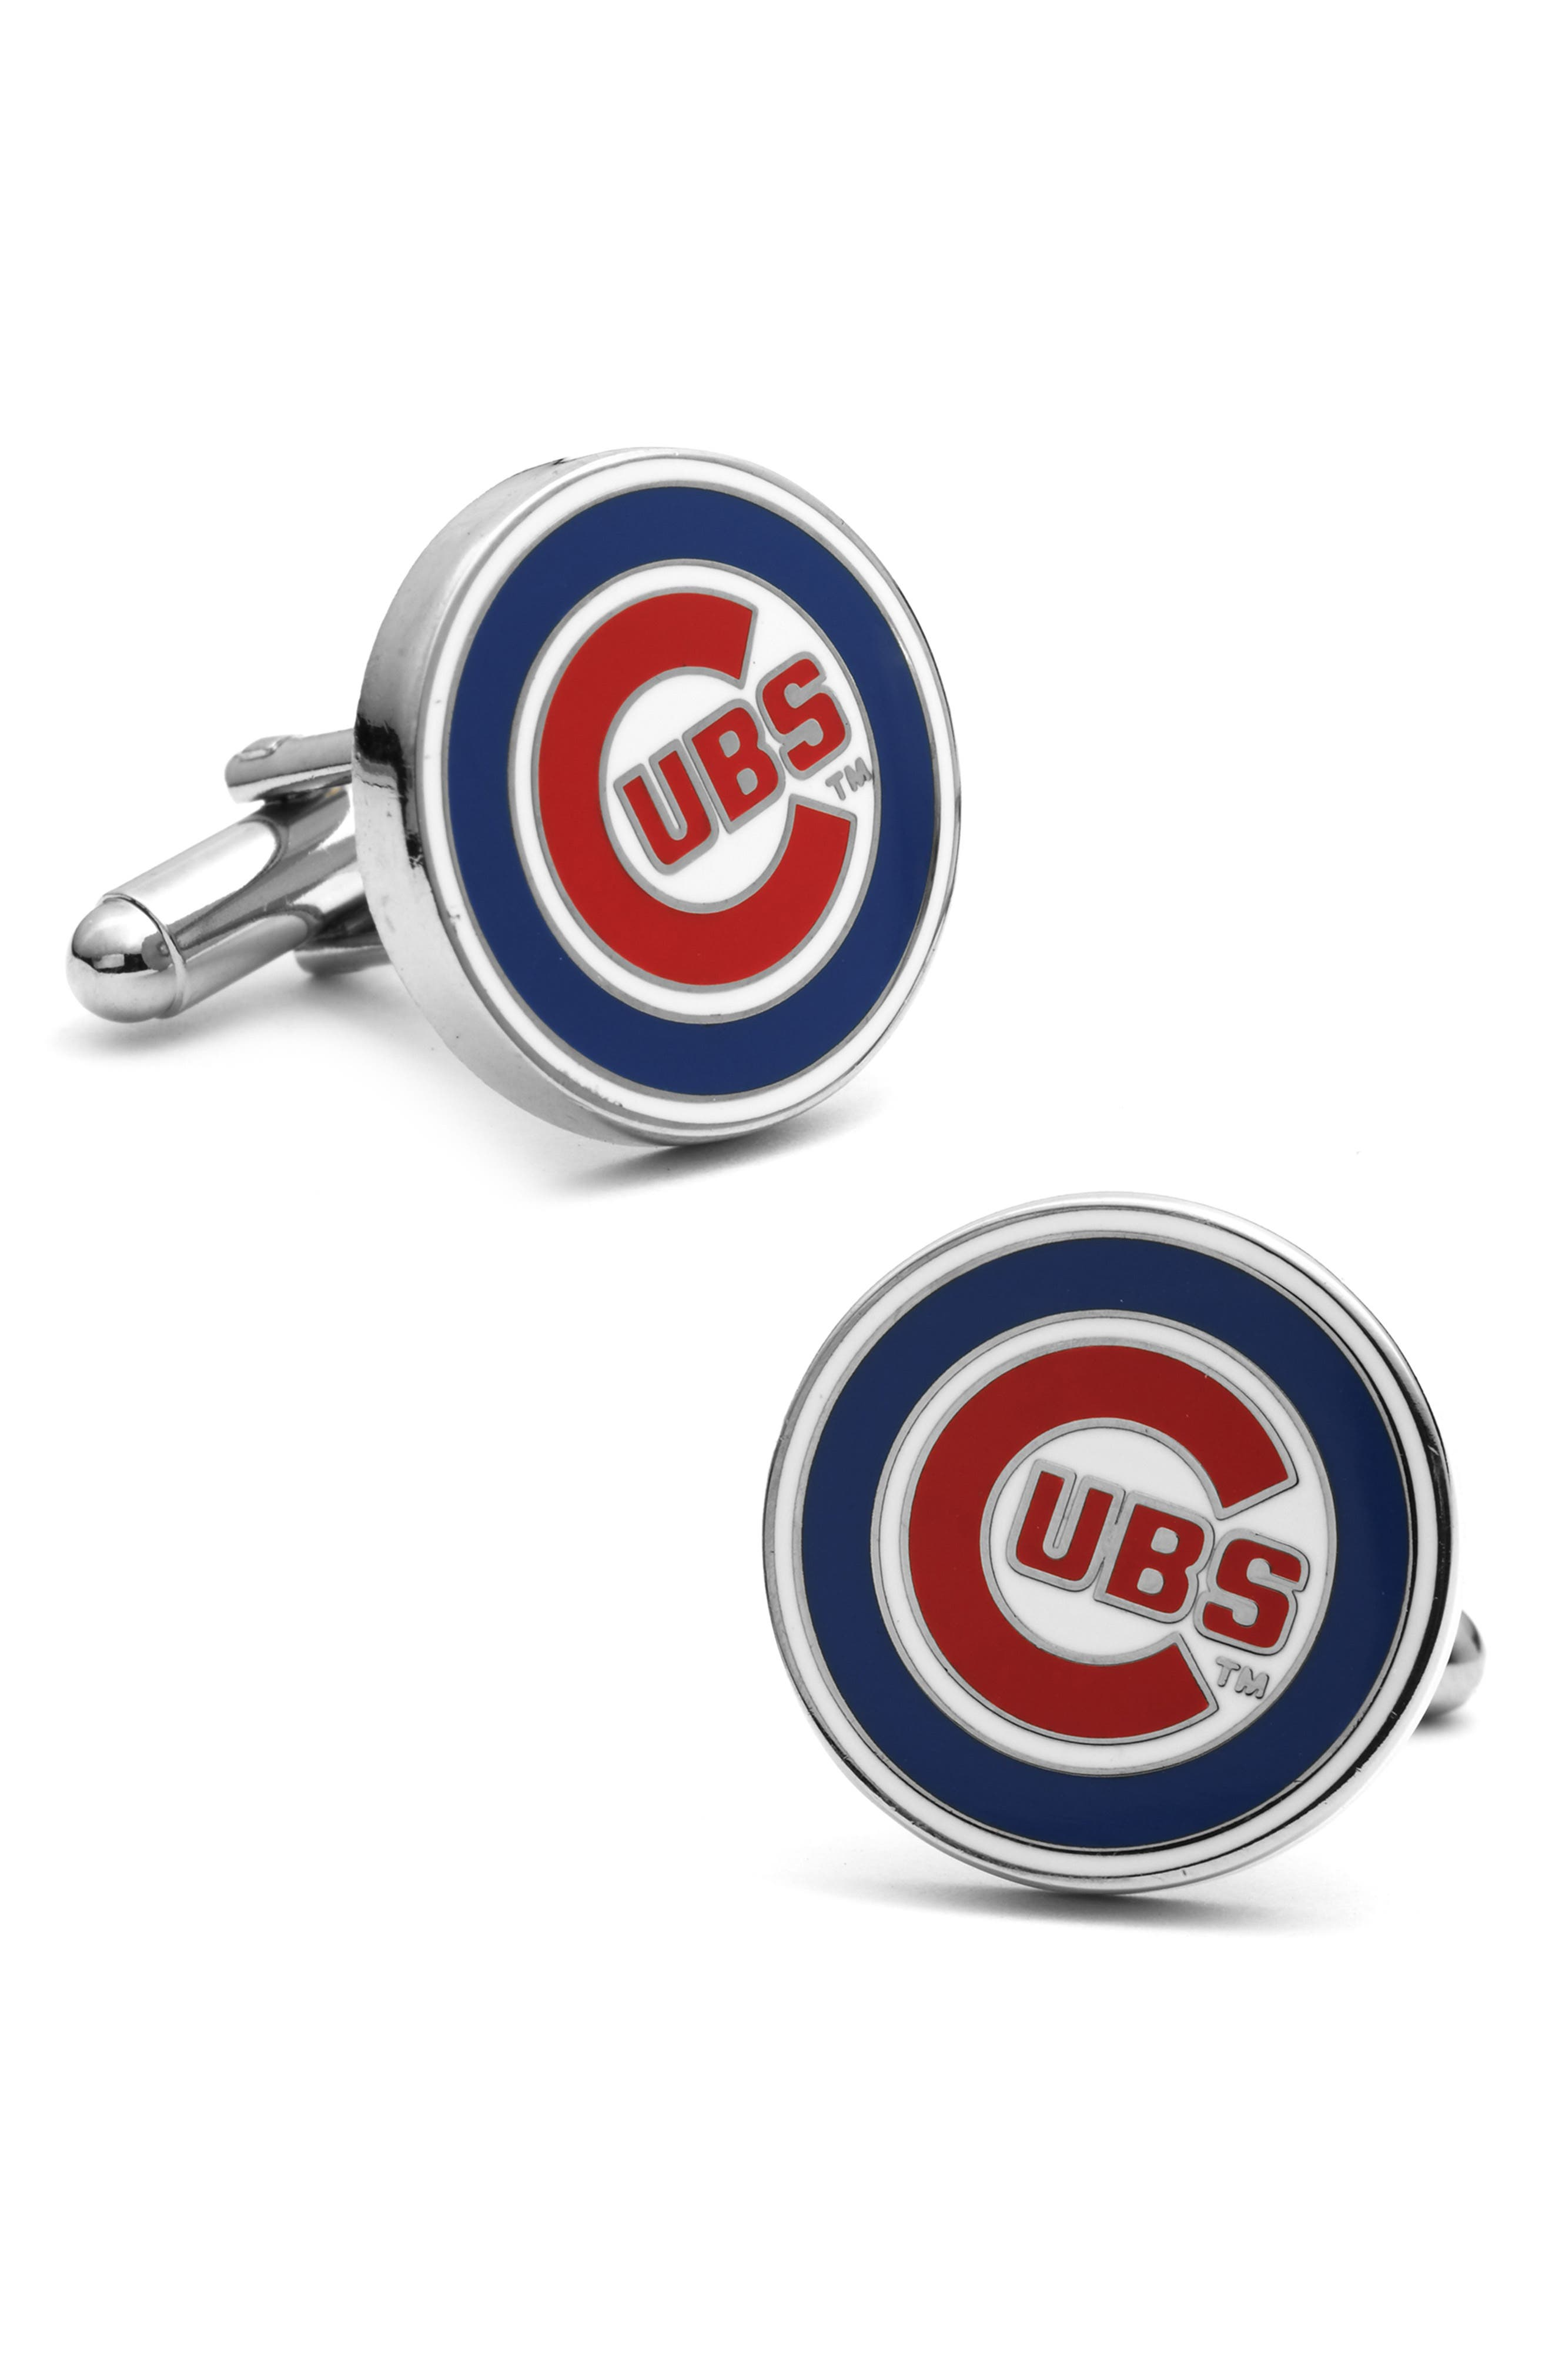 'Chicago Cubs' Cuff Links,                             Alternate thumbnail 2, color,                             BLUE/ RED/ WHITE